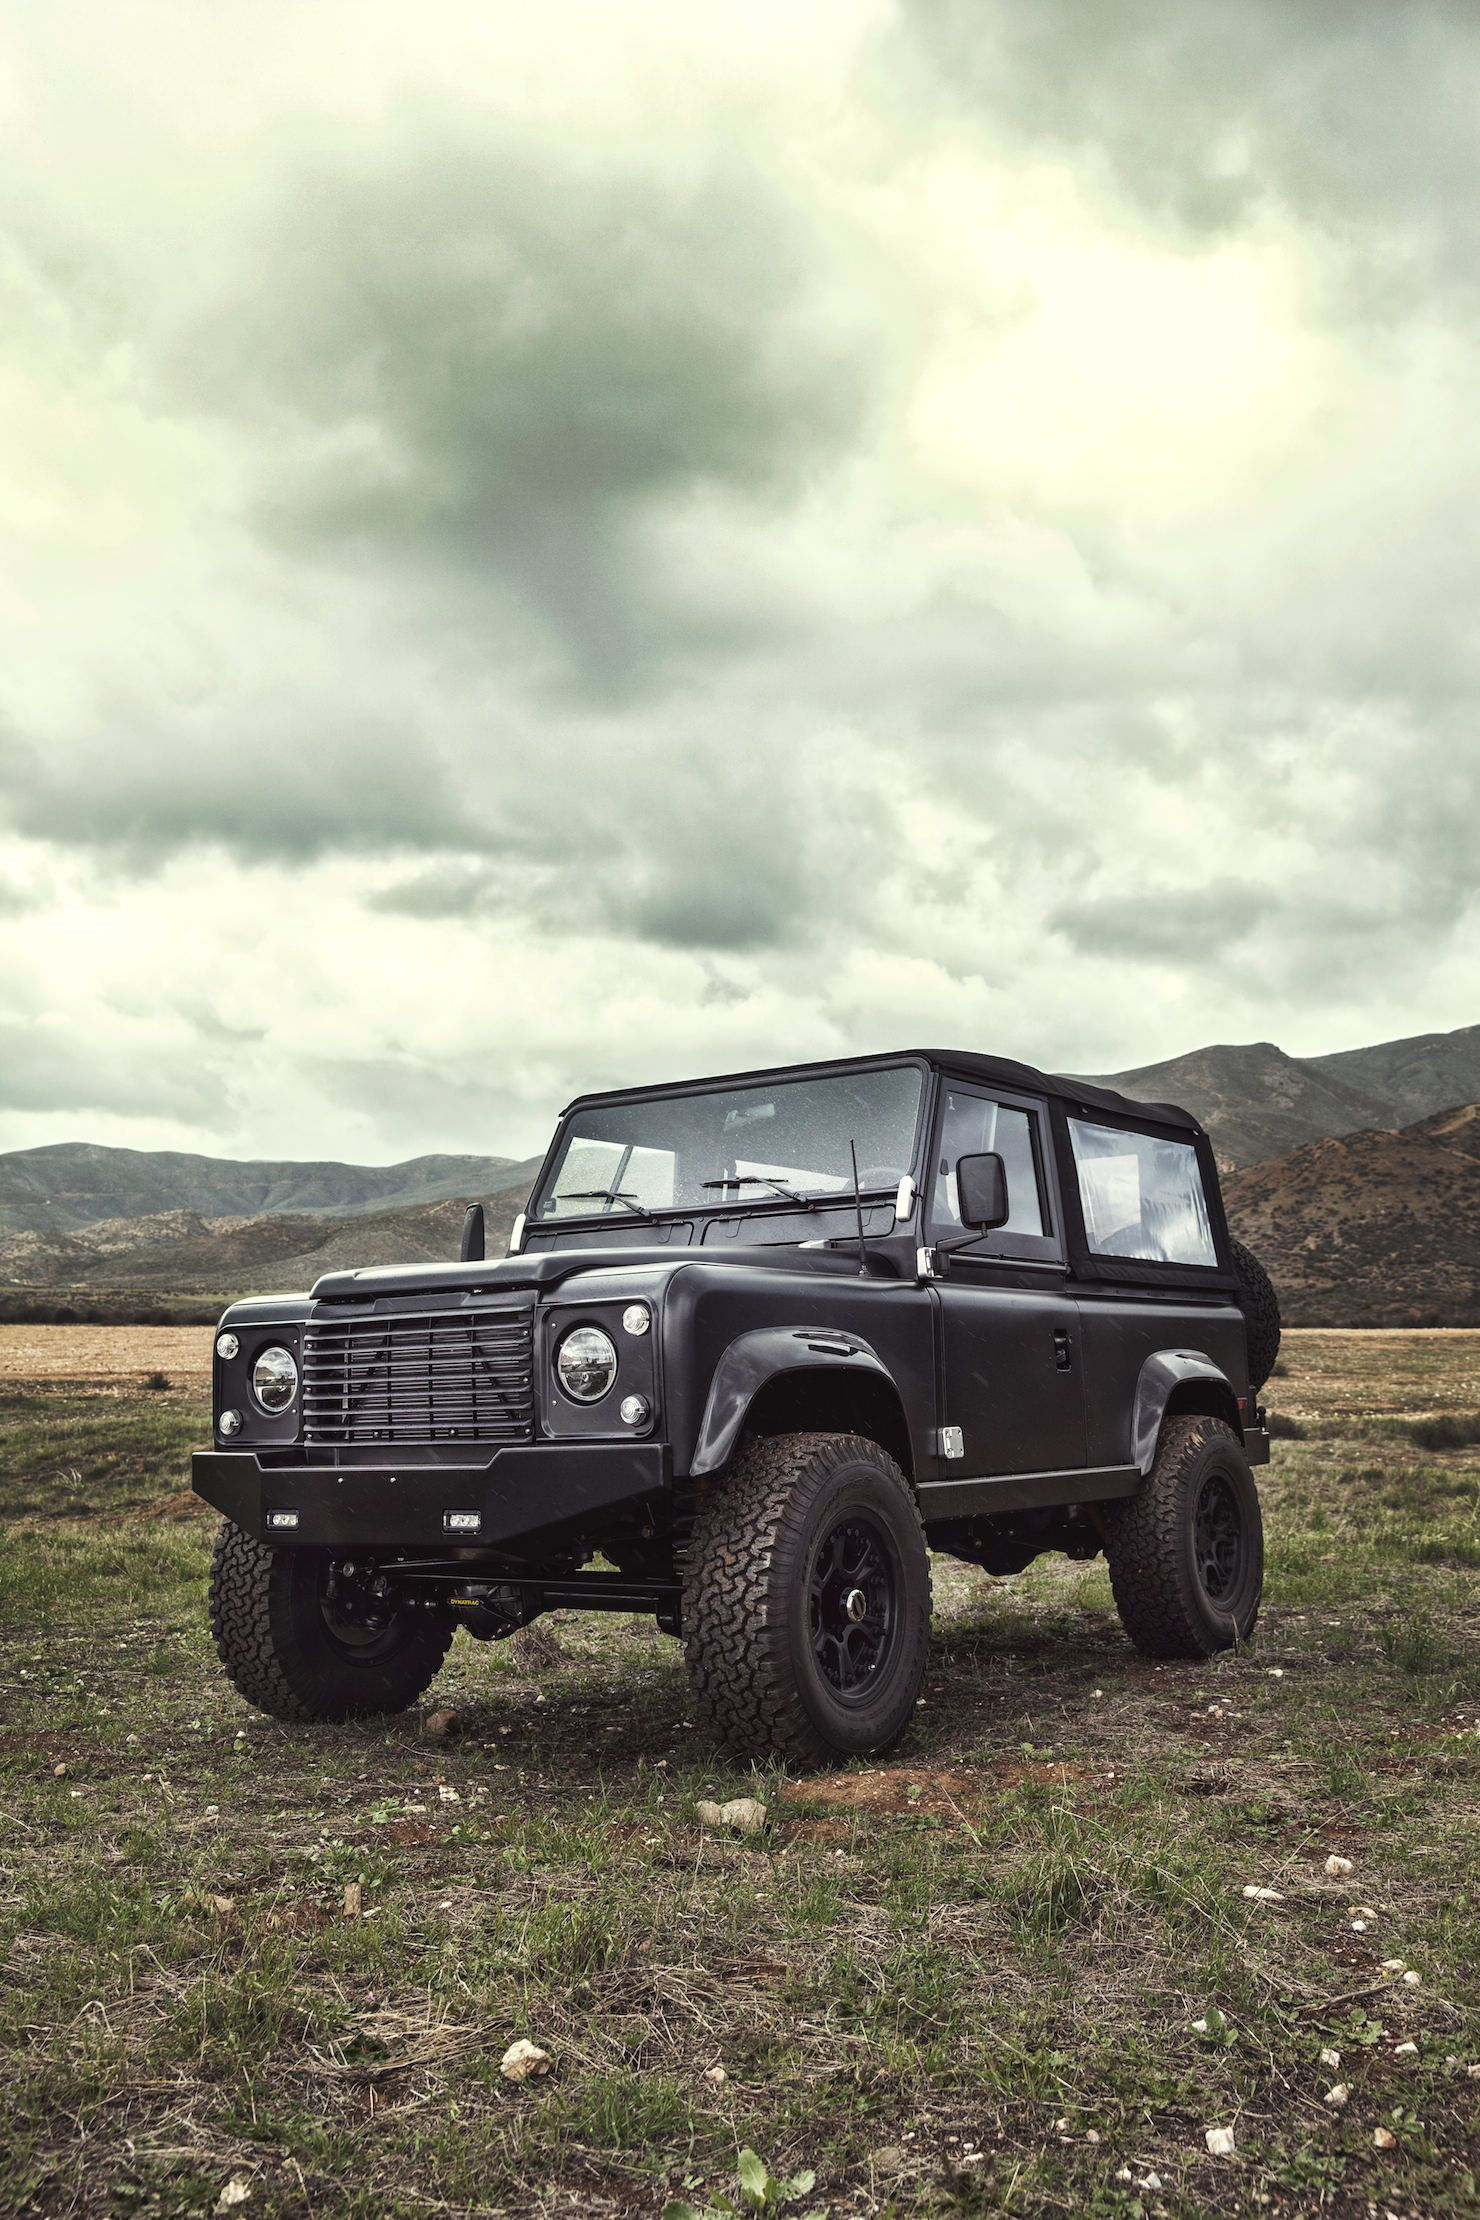 best 25 land rover v8 ideas on pinterest land rover car land rover 2016 and range rover near me. Black Bedroom Furniture Sets. Home Design Ideas